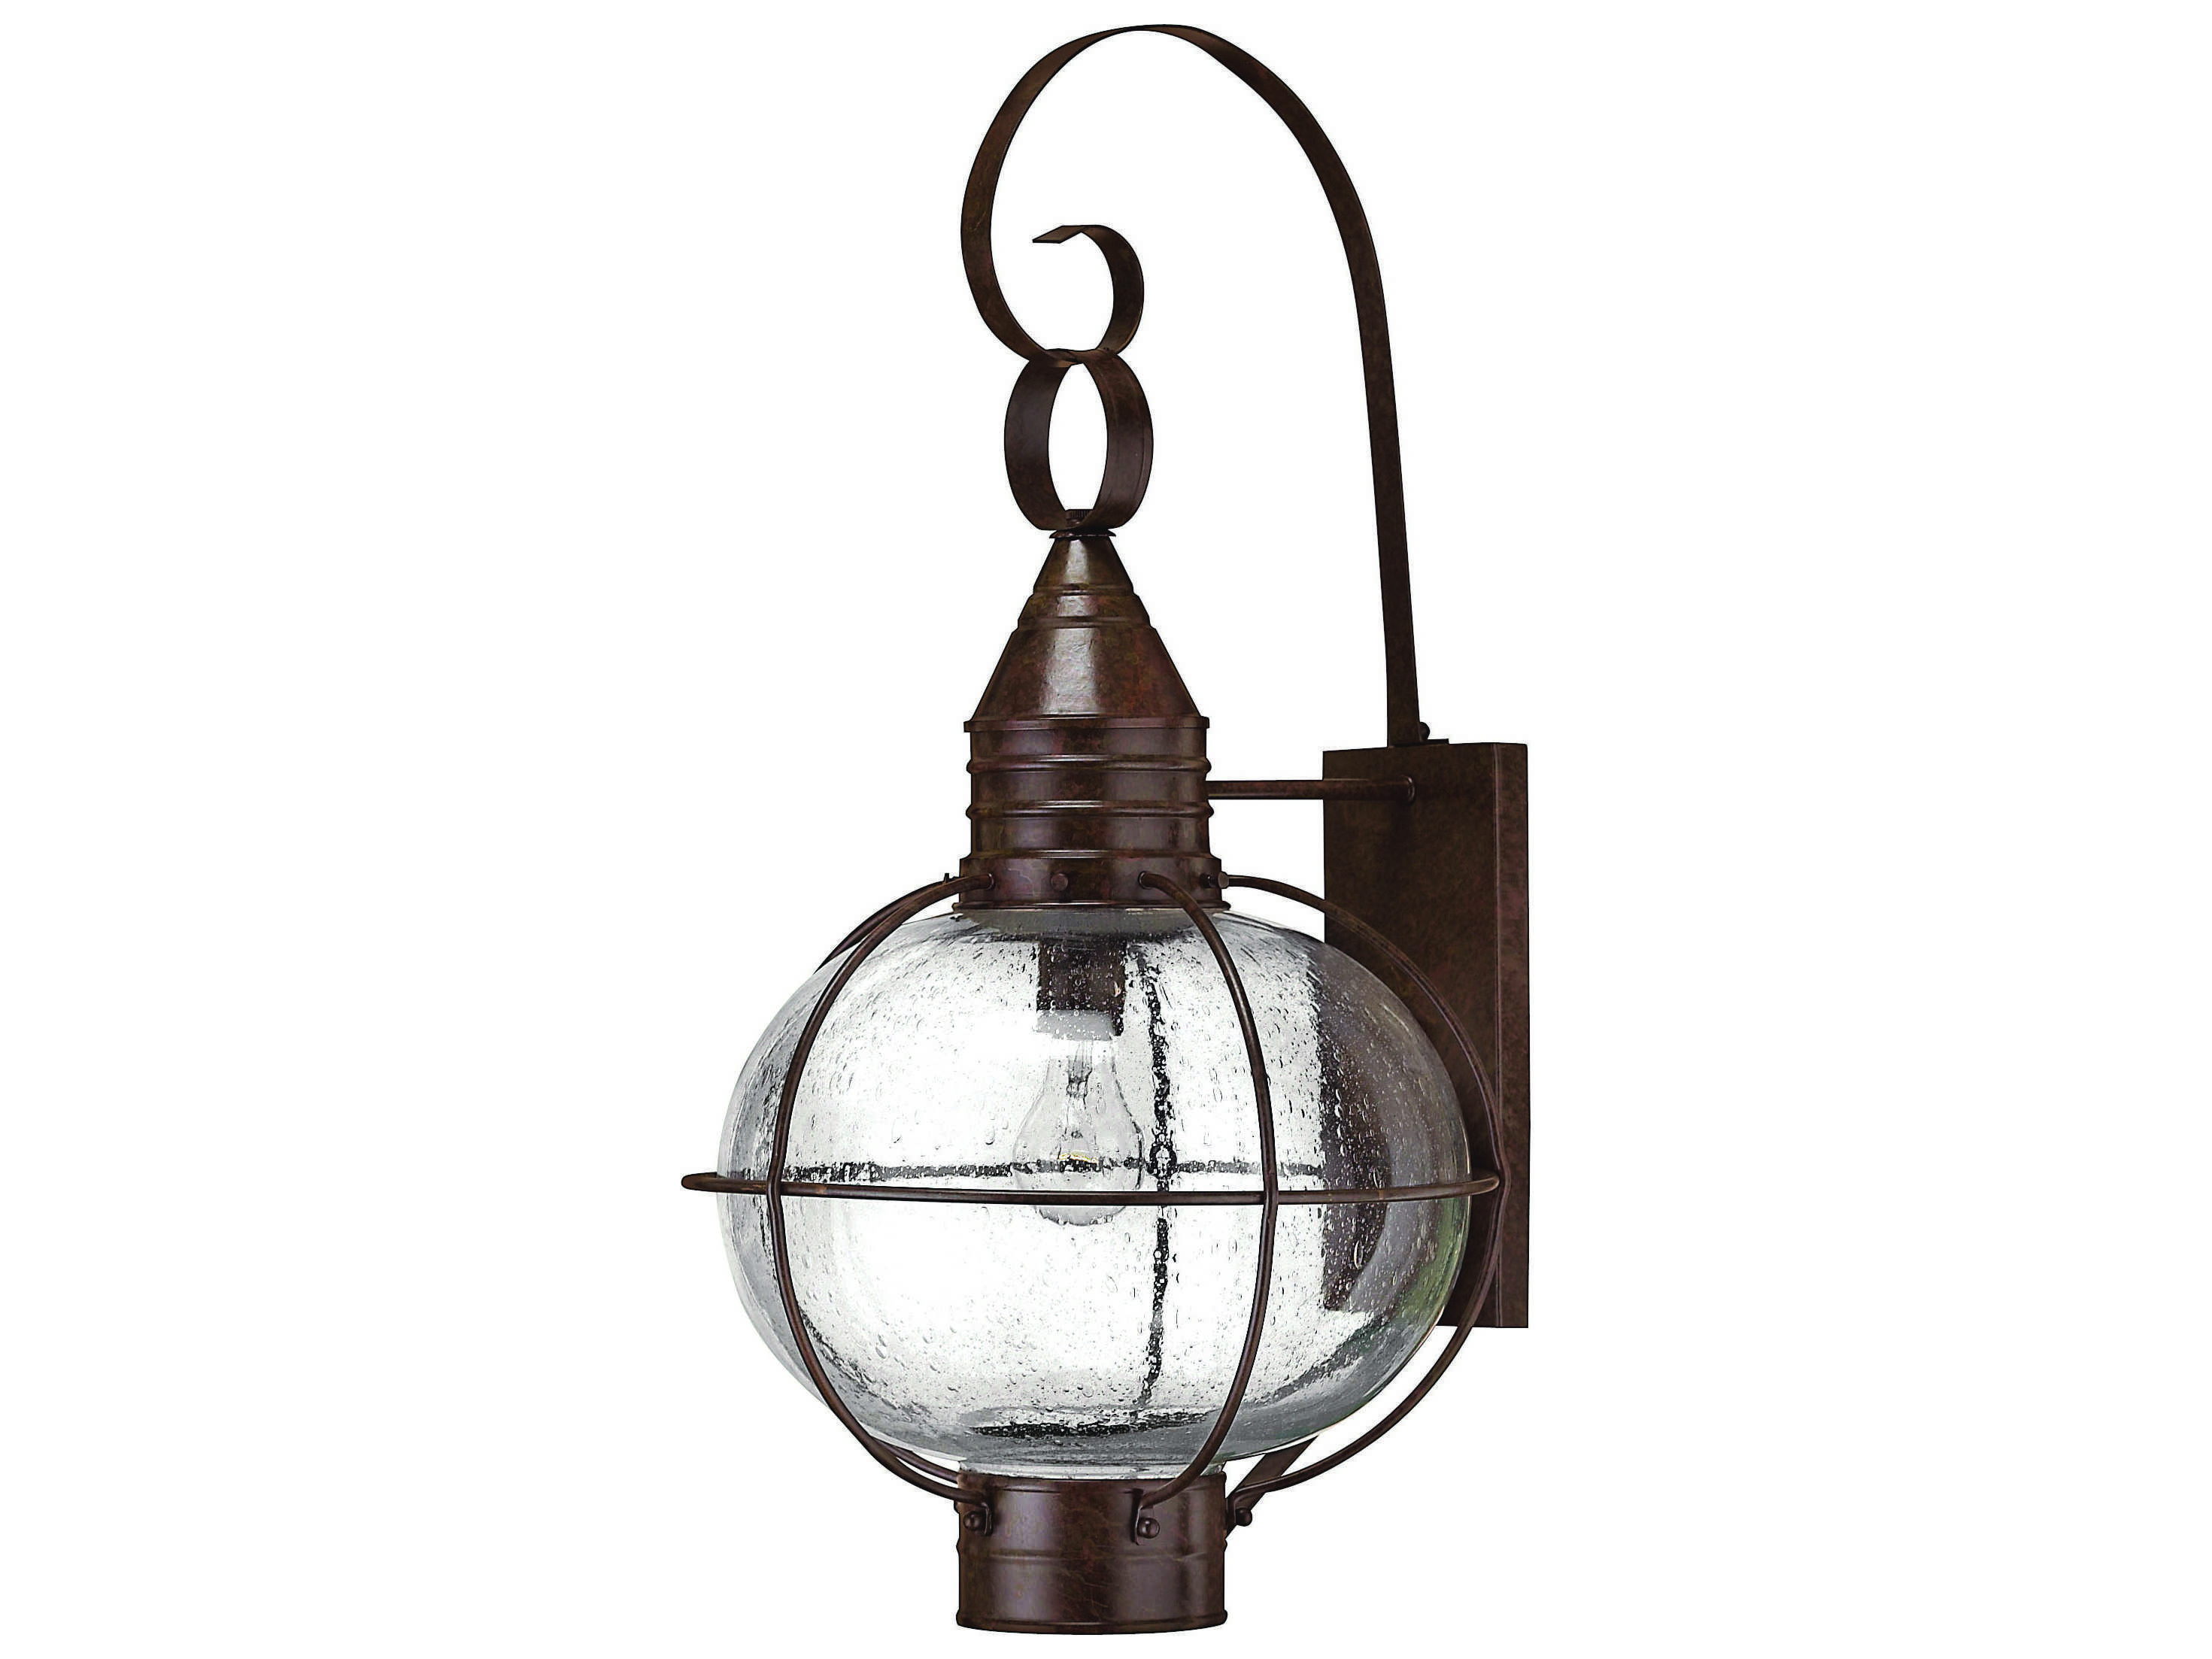 Hinkley Lighting Cape Cod Sienna Bronze LED Outdoor Wall